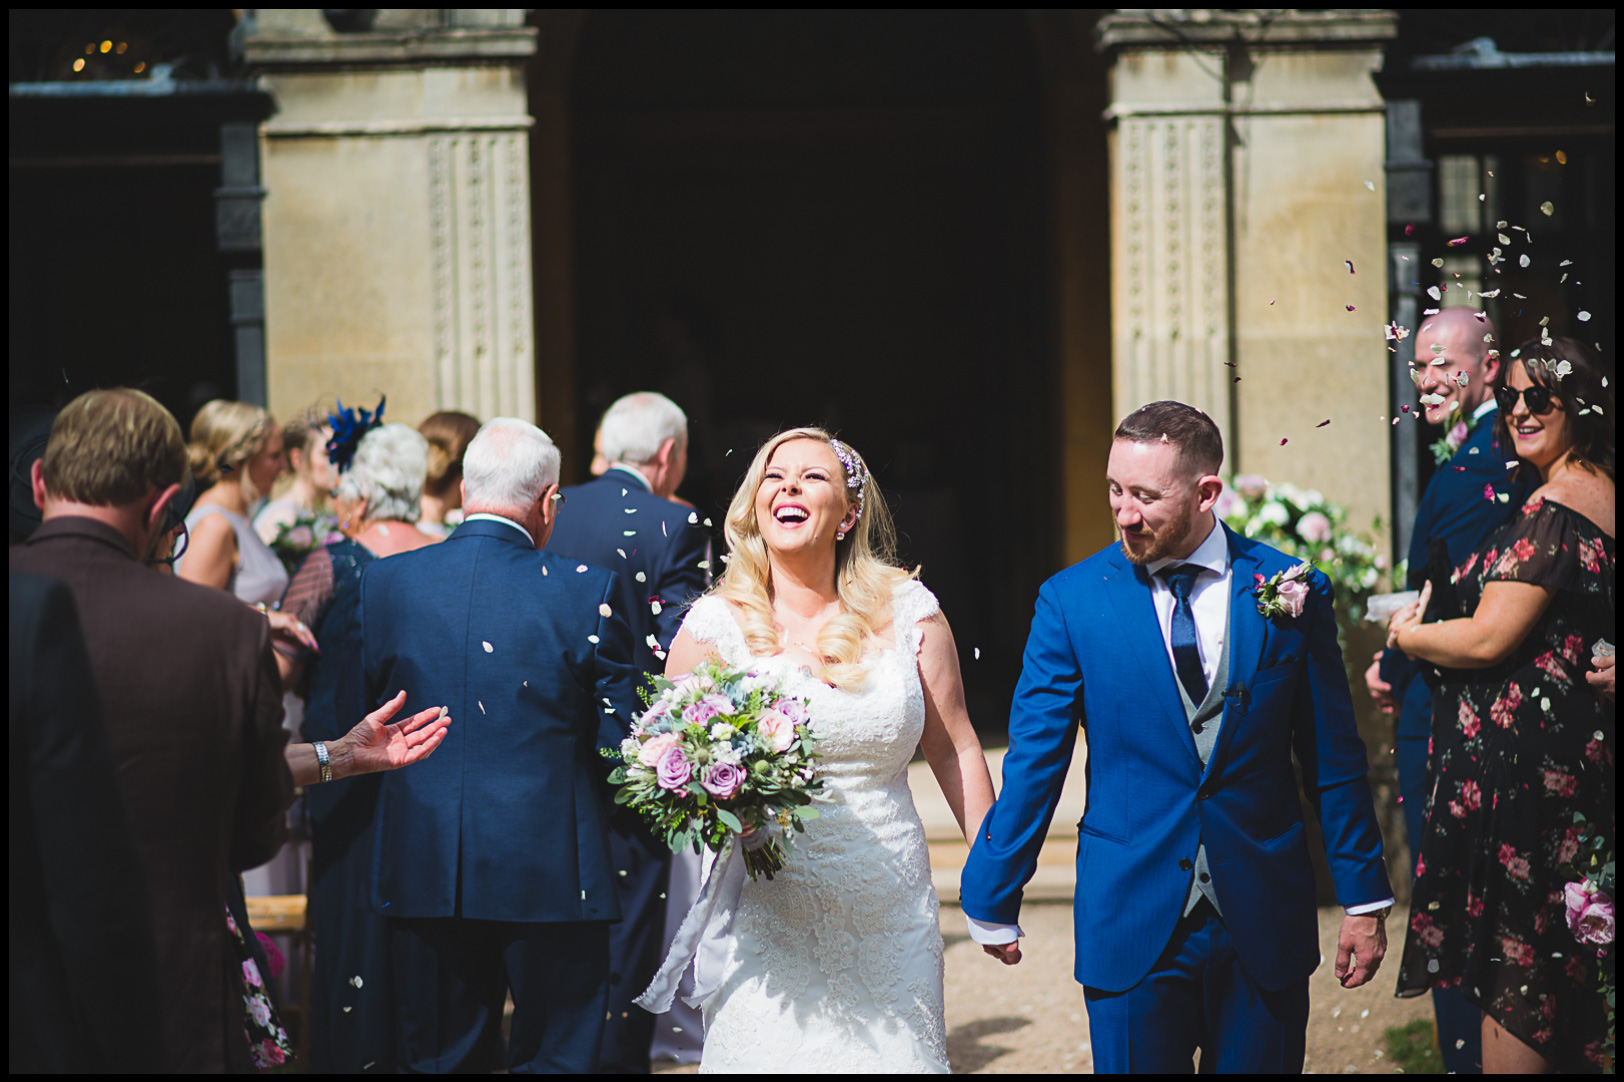 wedding-photographer-coombe-lodge.jpg